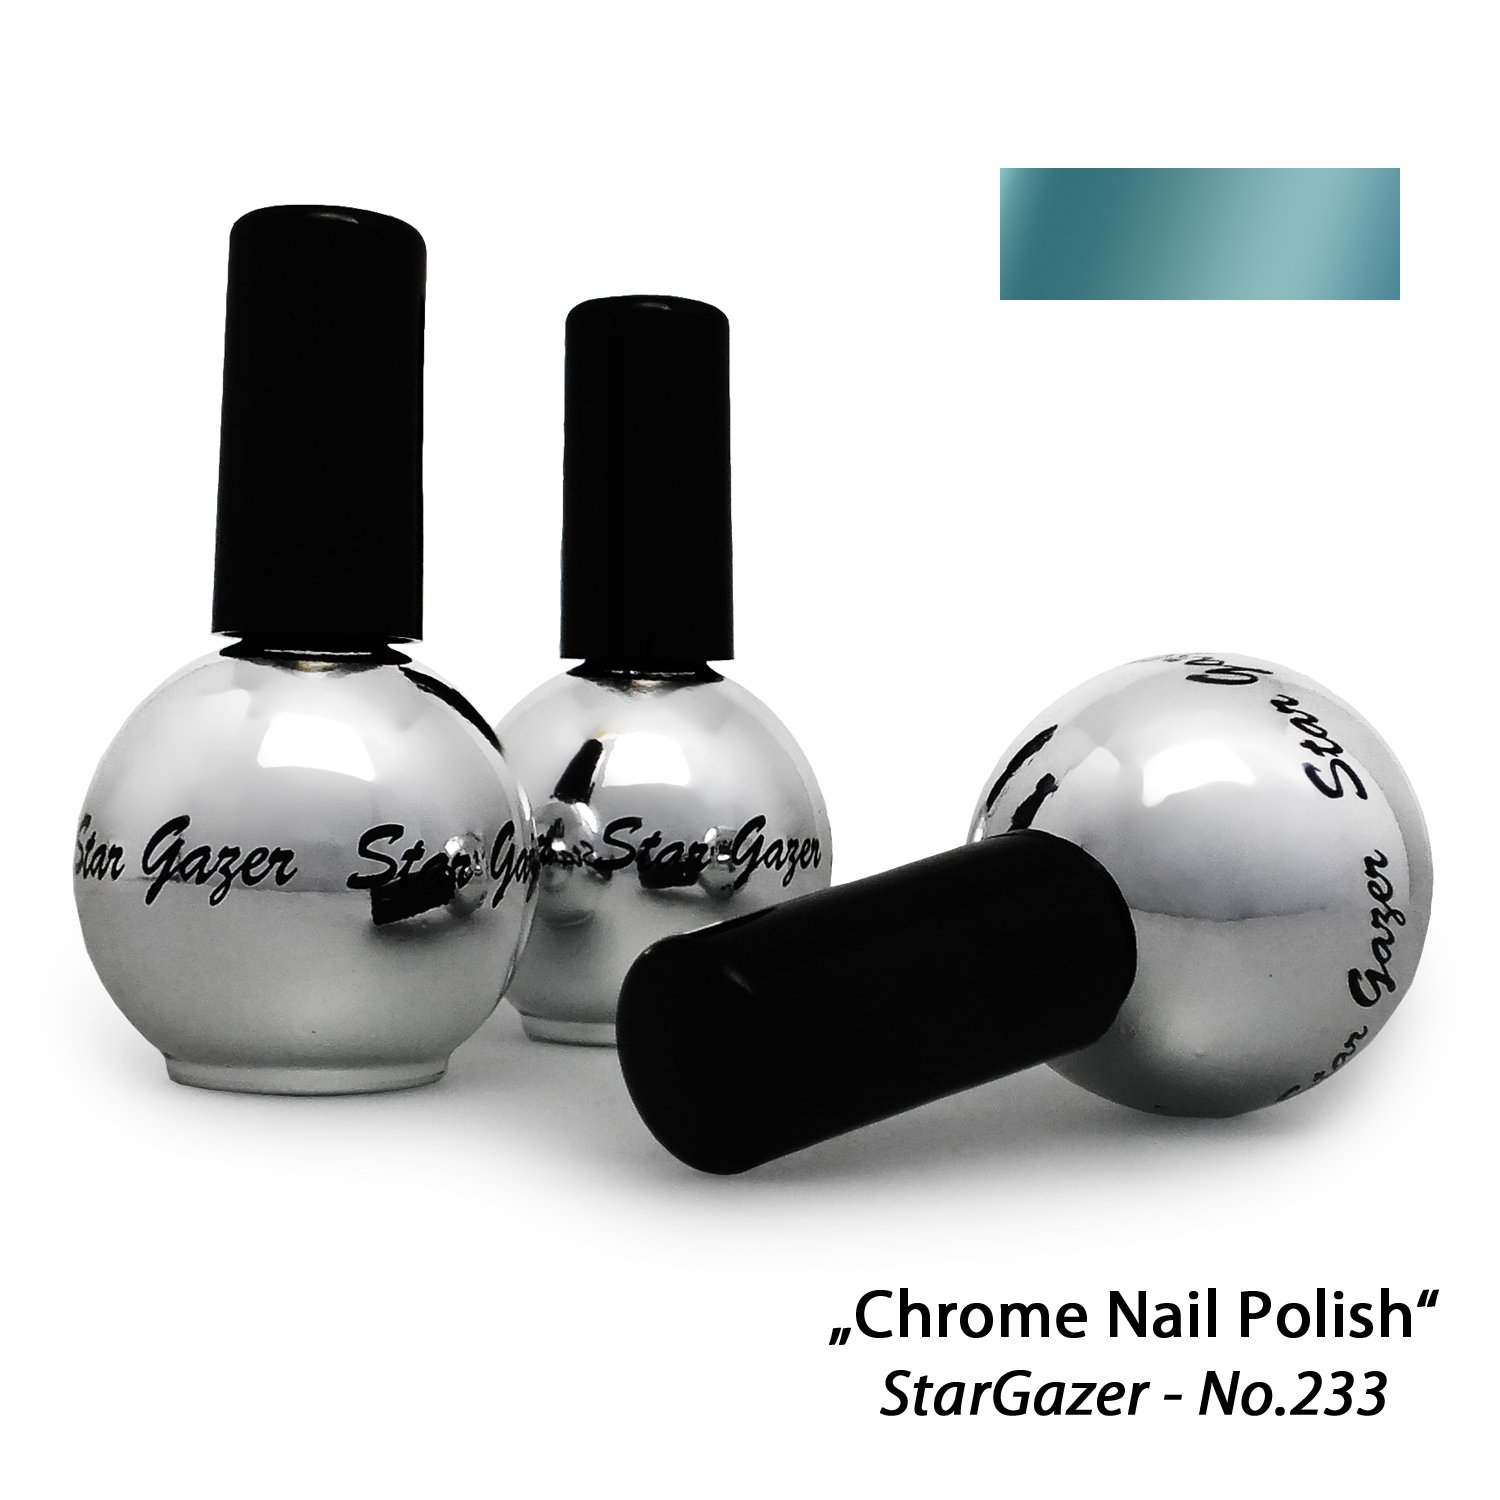 stargazer chrome nail polish